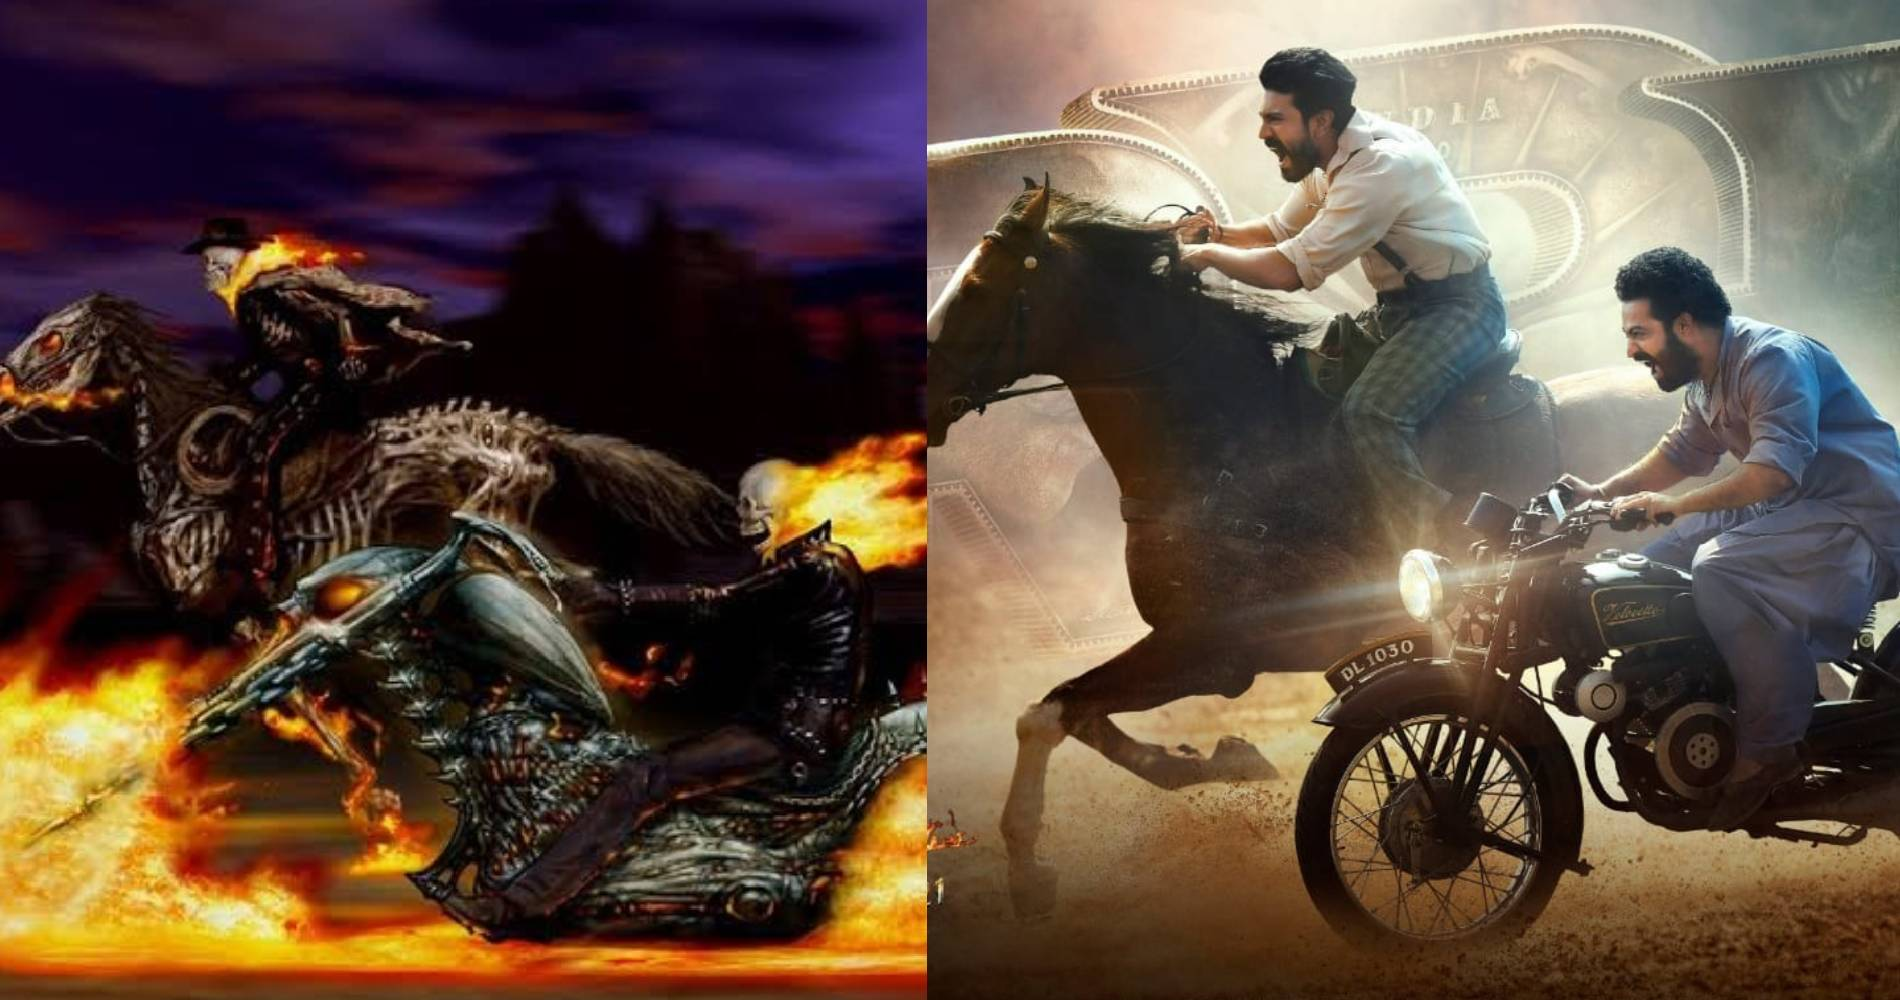 Ghost Rider poster Vs RRR release day poster